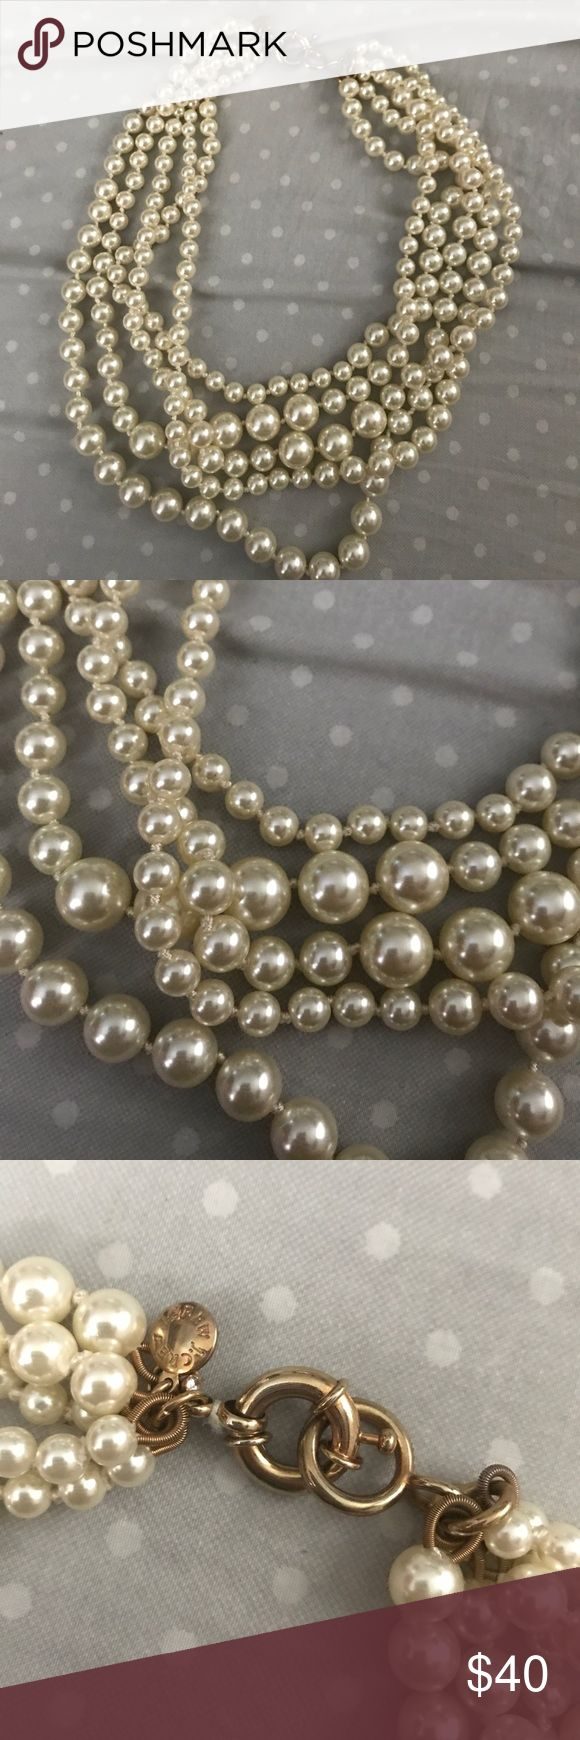 J crew multistrand pearl necklace Worn once, j crew necklace J. Crew Jewelry Necklaces